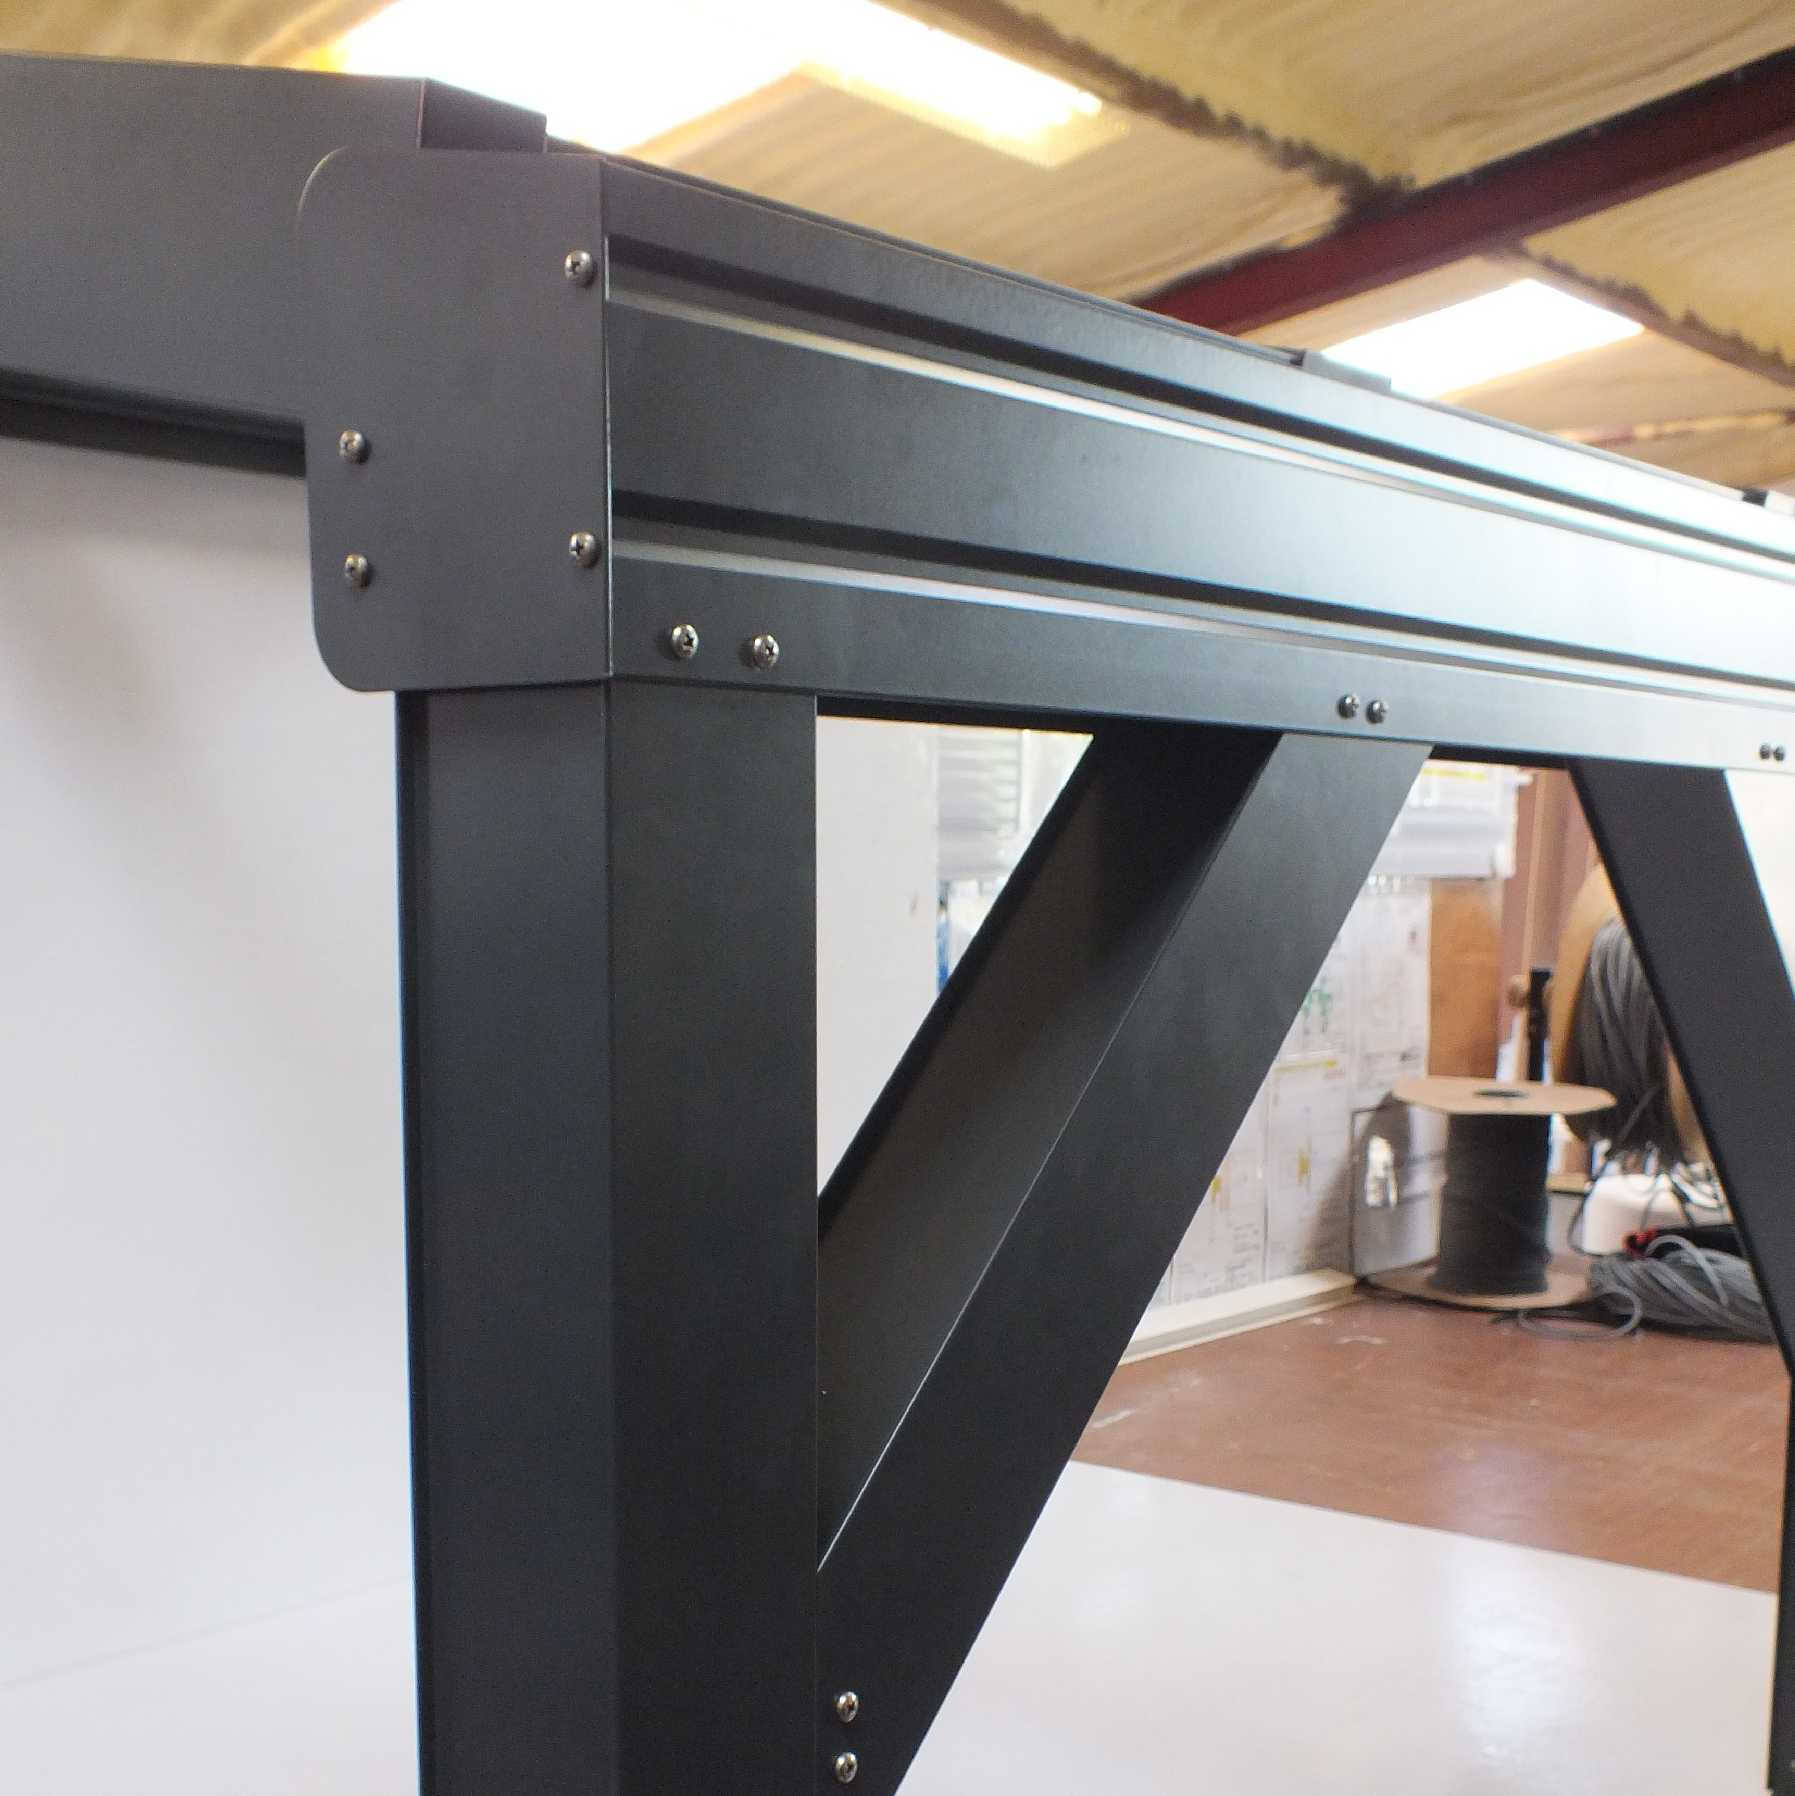 Omega Smart Lean-To Canopy, Anthracite Grey, UNGLAZED for 6mm Glazing - 9.8m (W) x 1.5m (P), (5) Supporting Posts from Omega Build